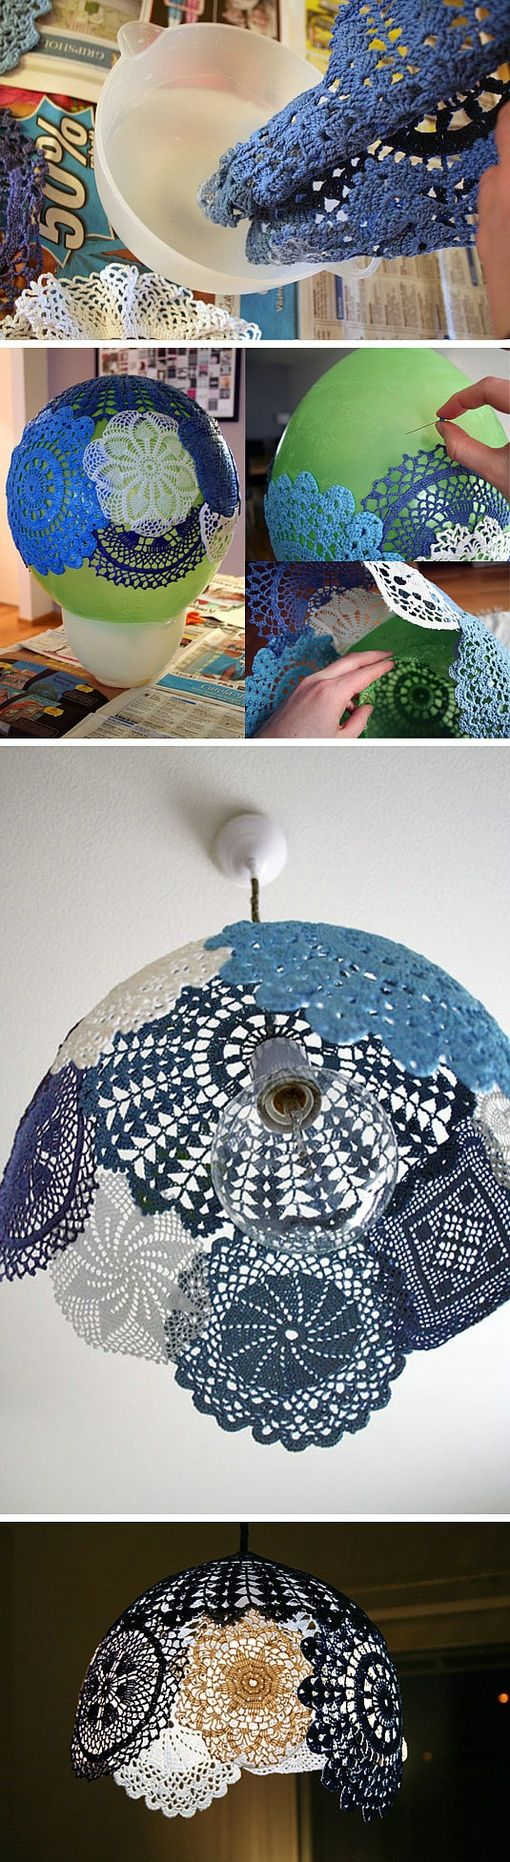 Top 10 home decor diy ideas lampshade ideas diy lampshade and craft solutioingenieria Image collections